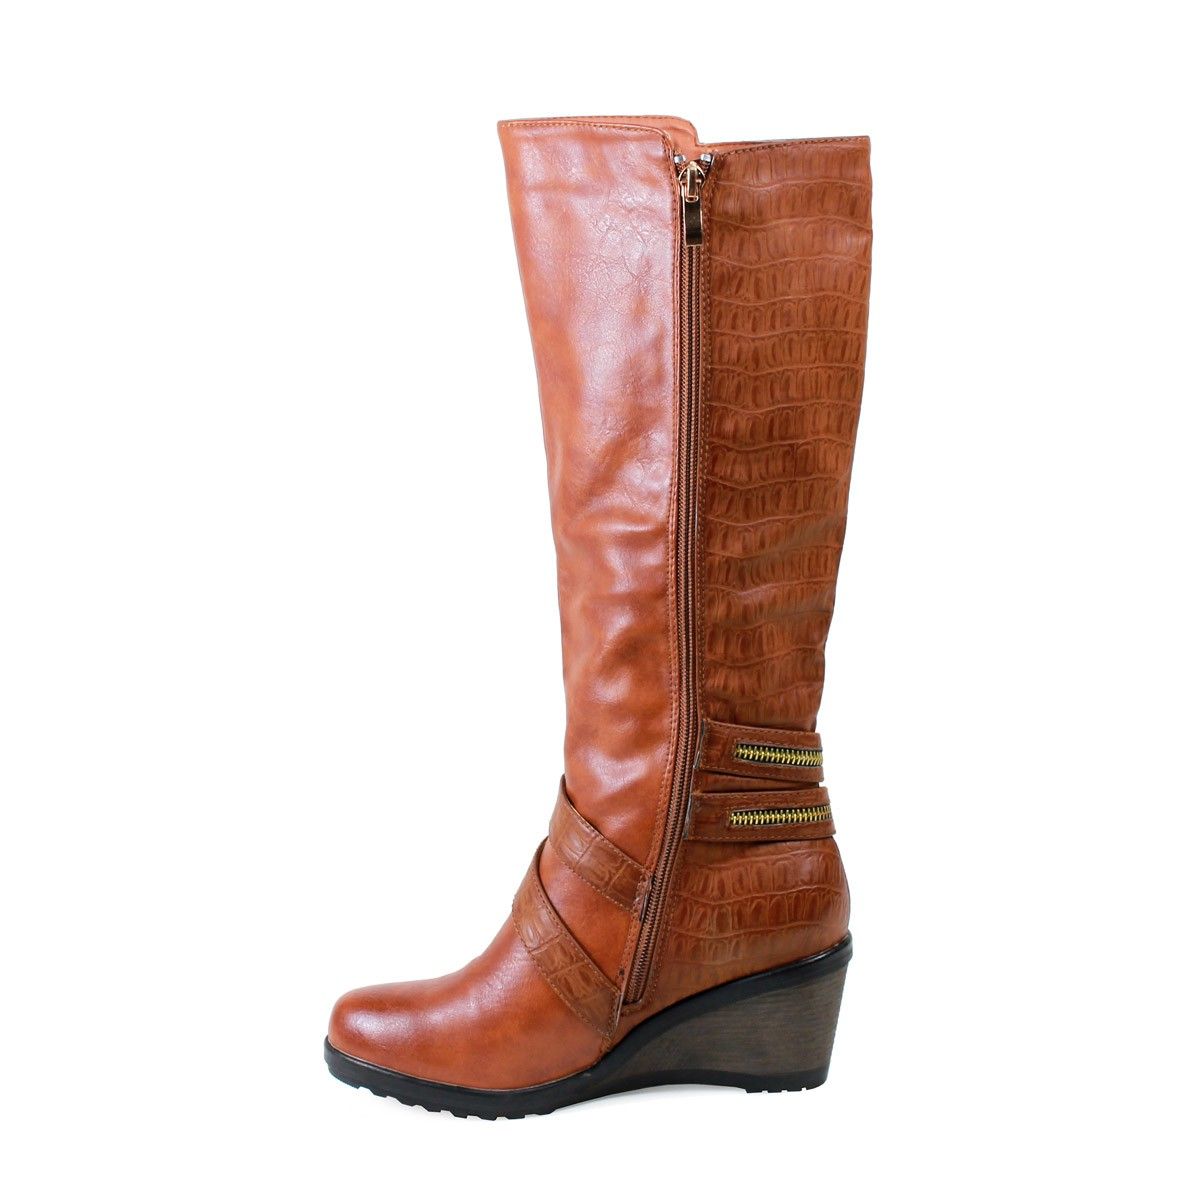 Womens Wedge Boots 7RDC08p2